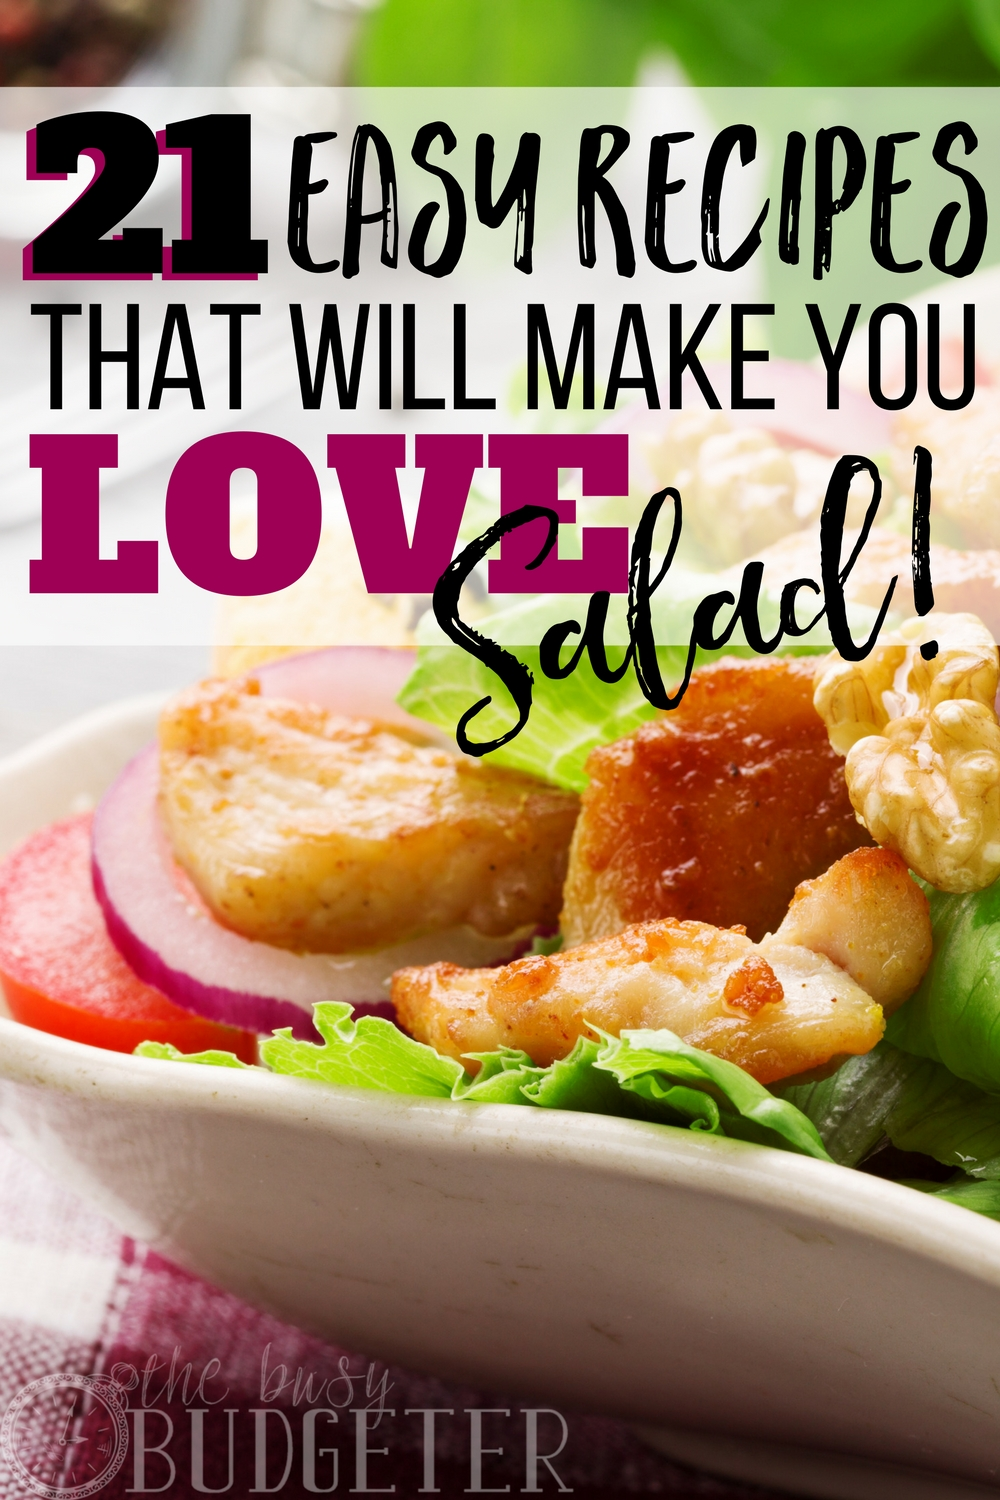 OK I'll admit it, I'm not a huge salad fan but I know it's good for me and my family so I always try to make it at least once a week. But seriously.. wow. These easy salad recipes are such a game changer, I actually WANT salad now!!